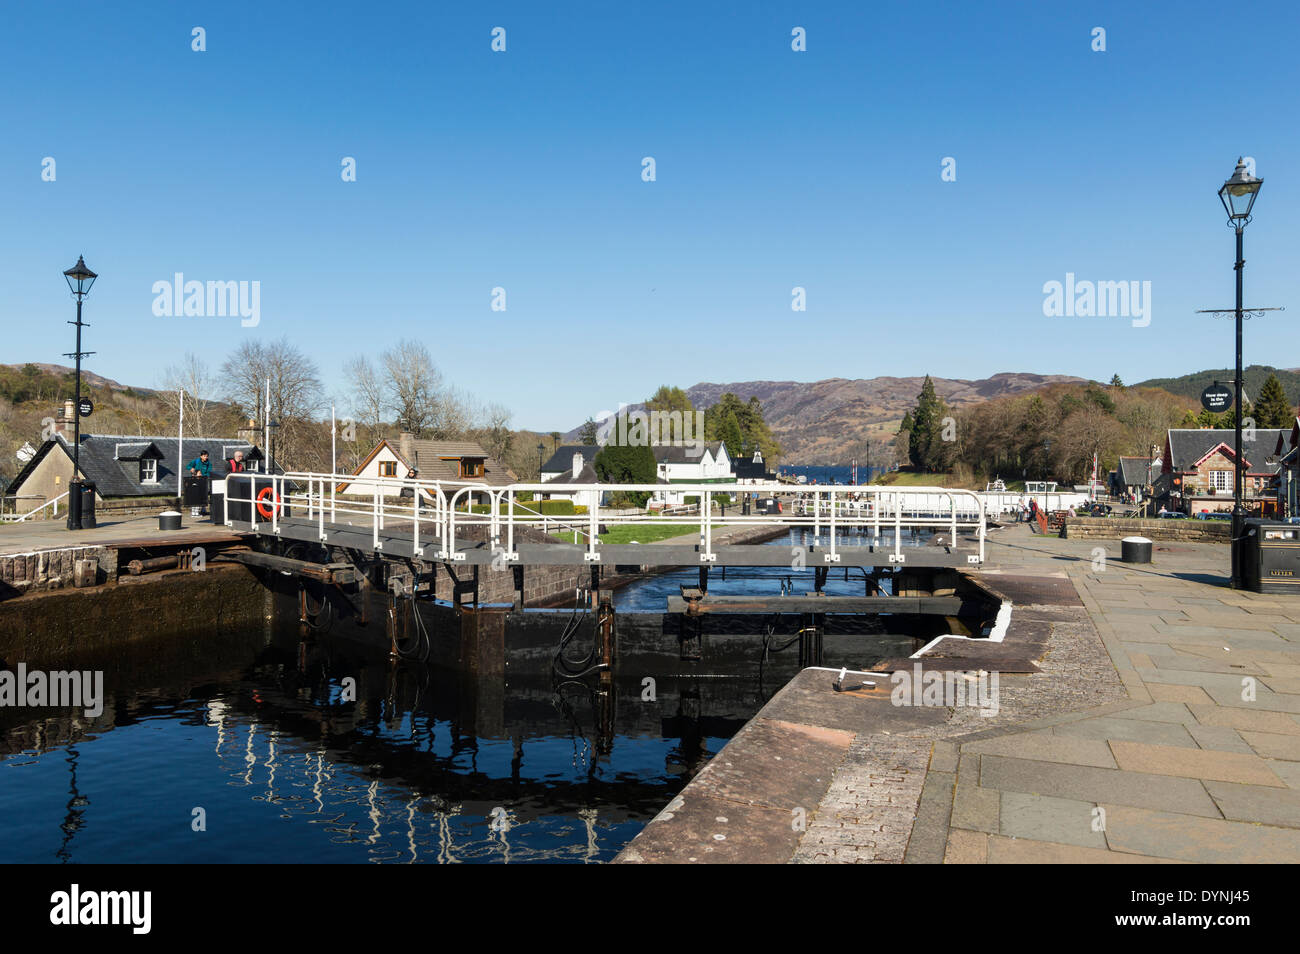 LOCK KEEPER AT CONTROL BOX OPENING TELFORD LOCK GATES FORT AUGUSTUS LOCH NESS - Stock Image